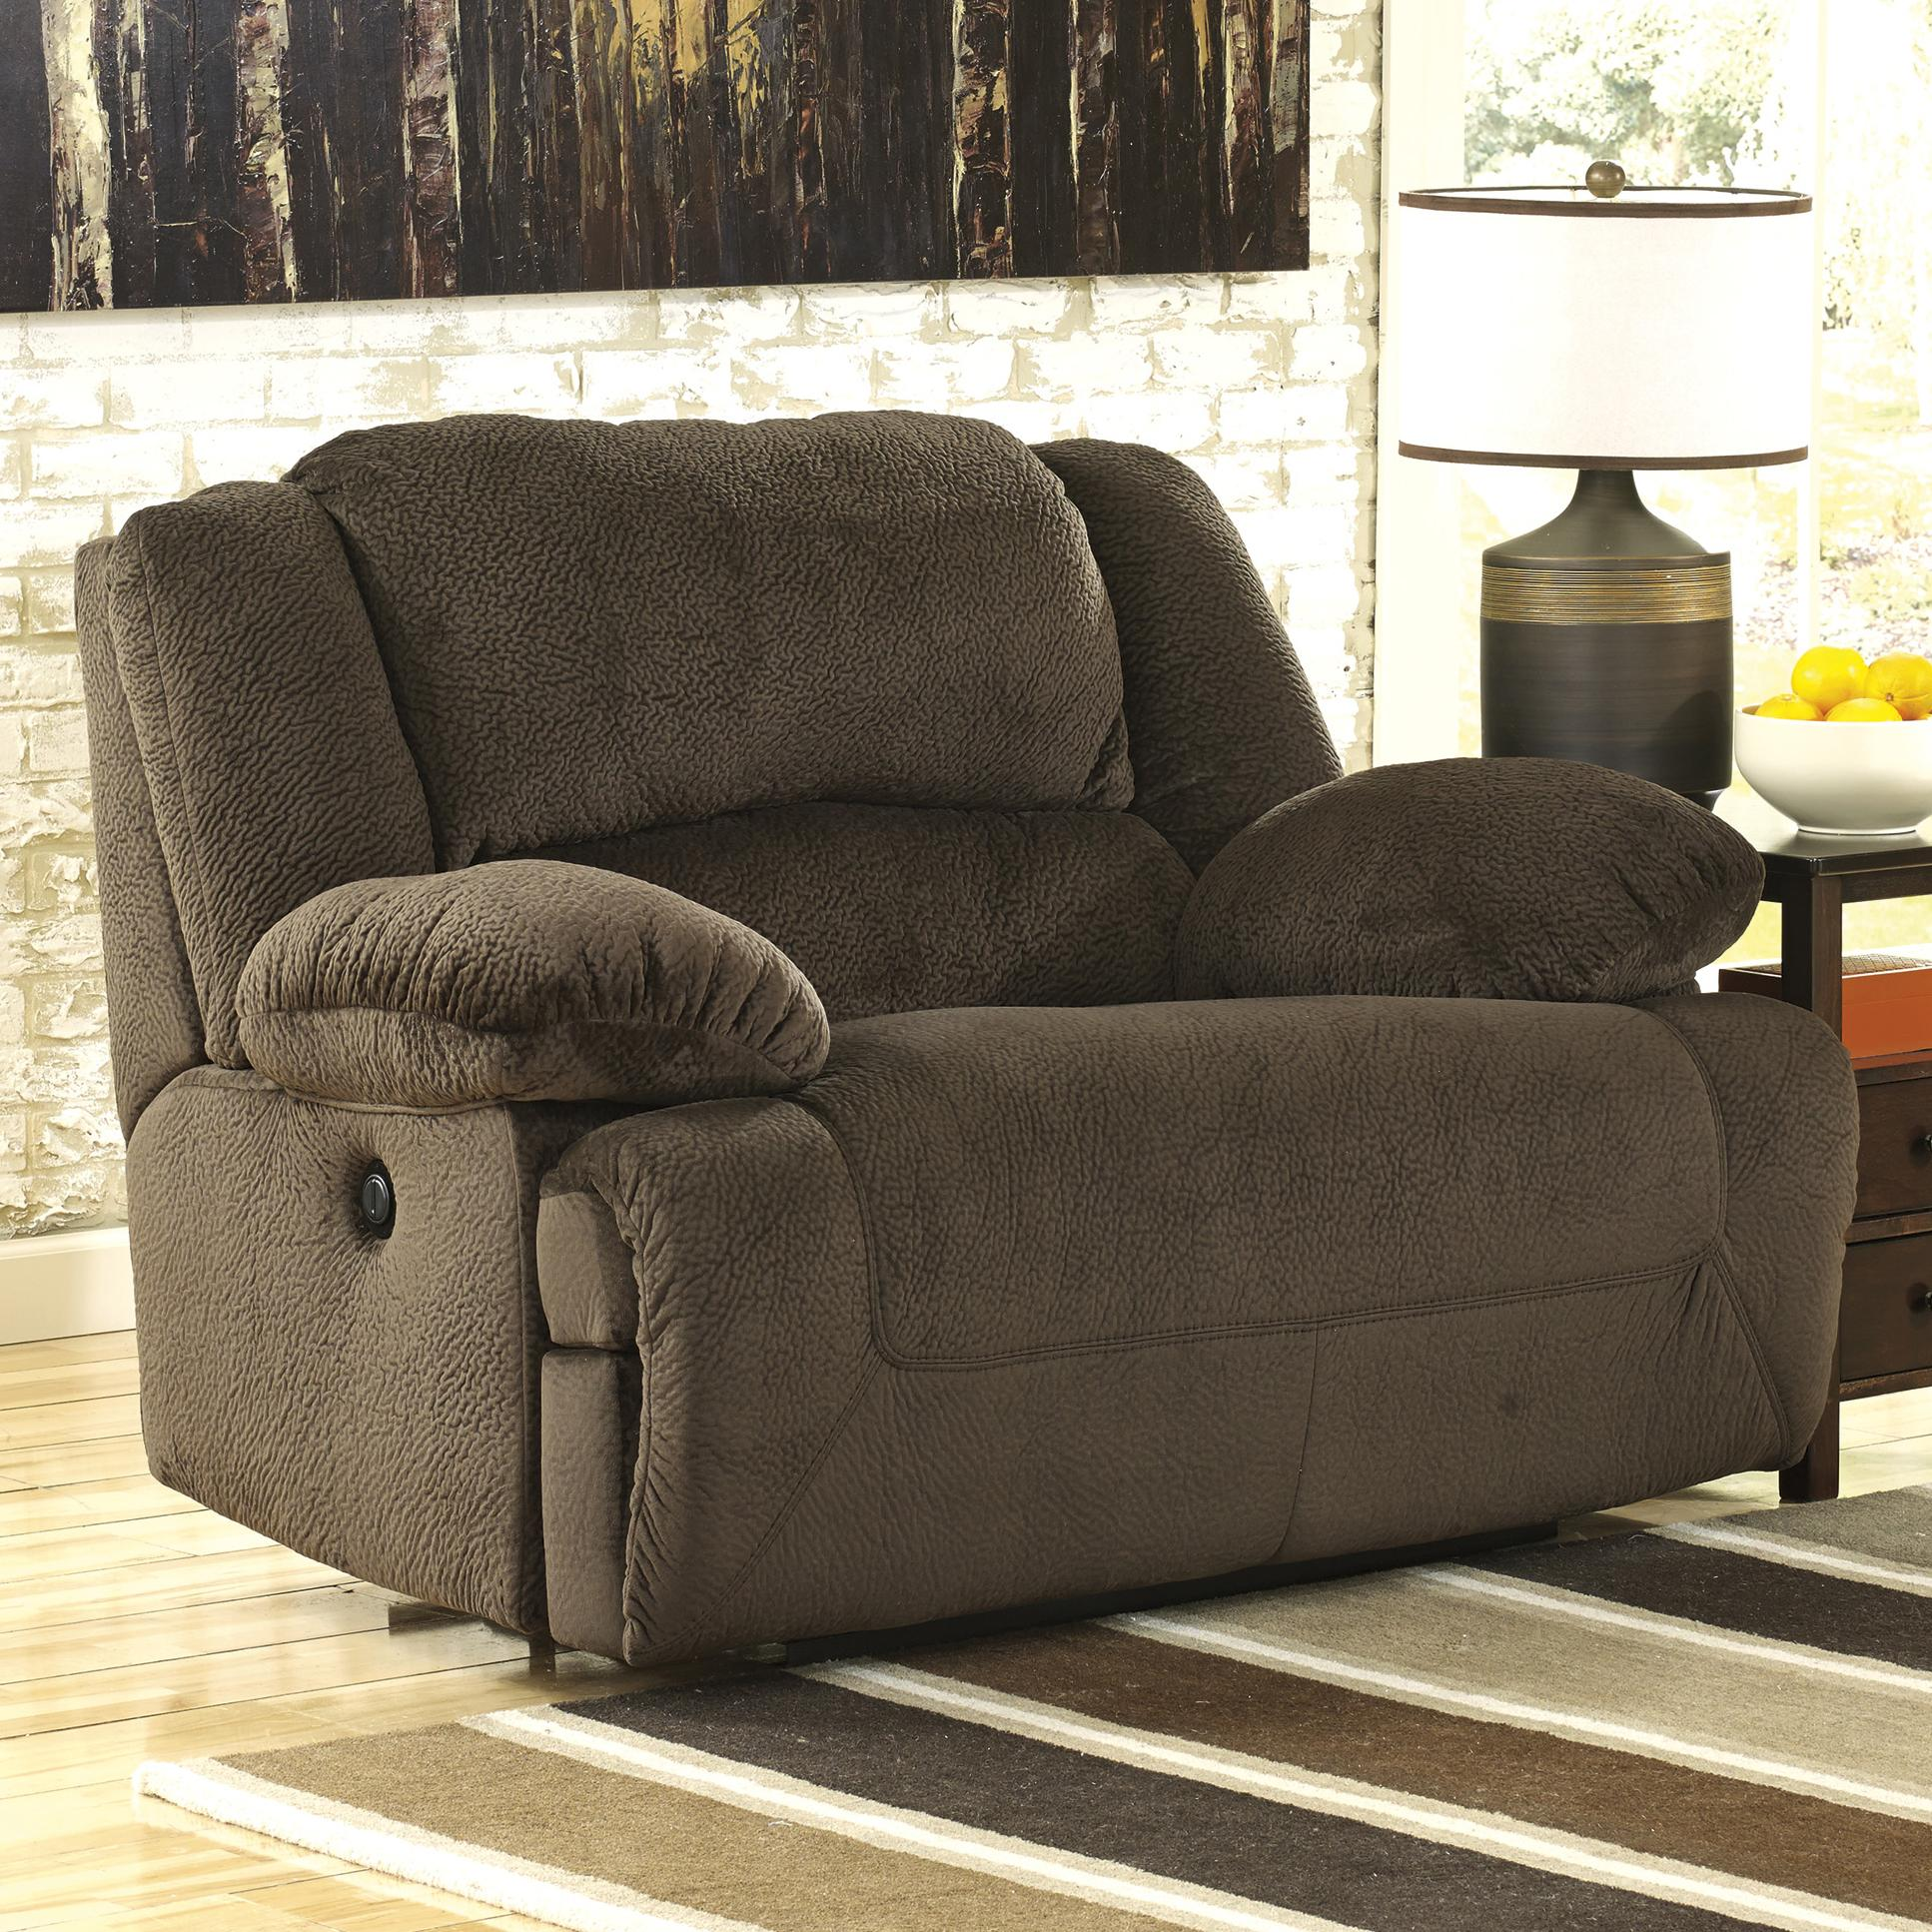 Incroyable Wide Seat Power Recliner